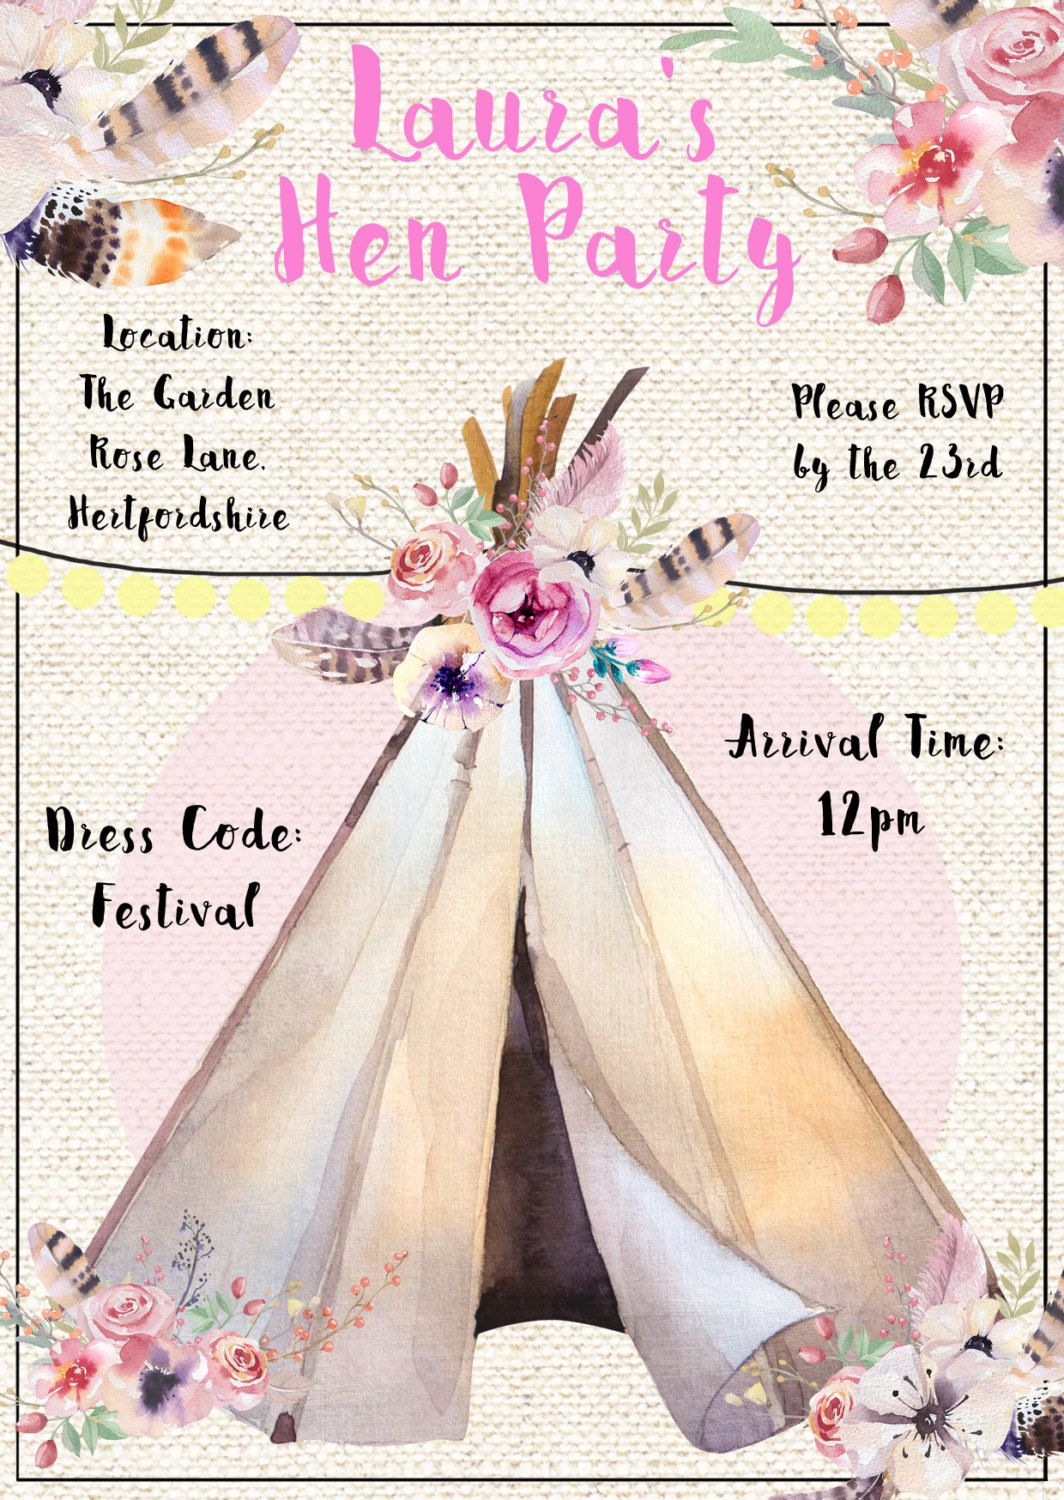 Hen Party Invitation, Festival Tipi Theme, with flowers and festoons ...